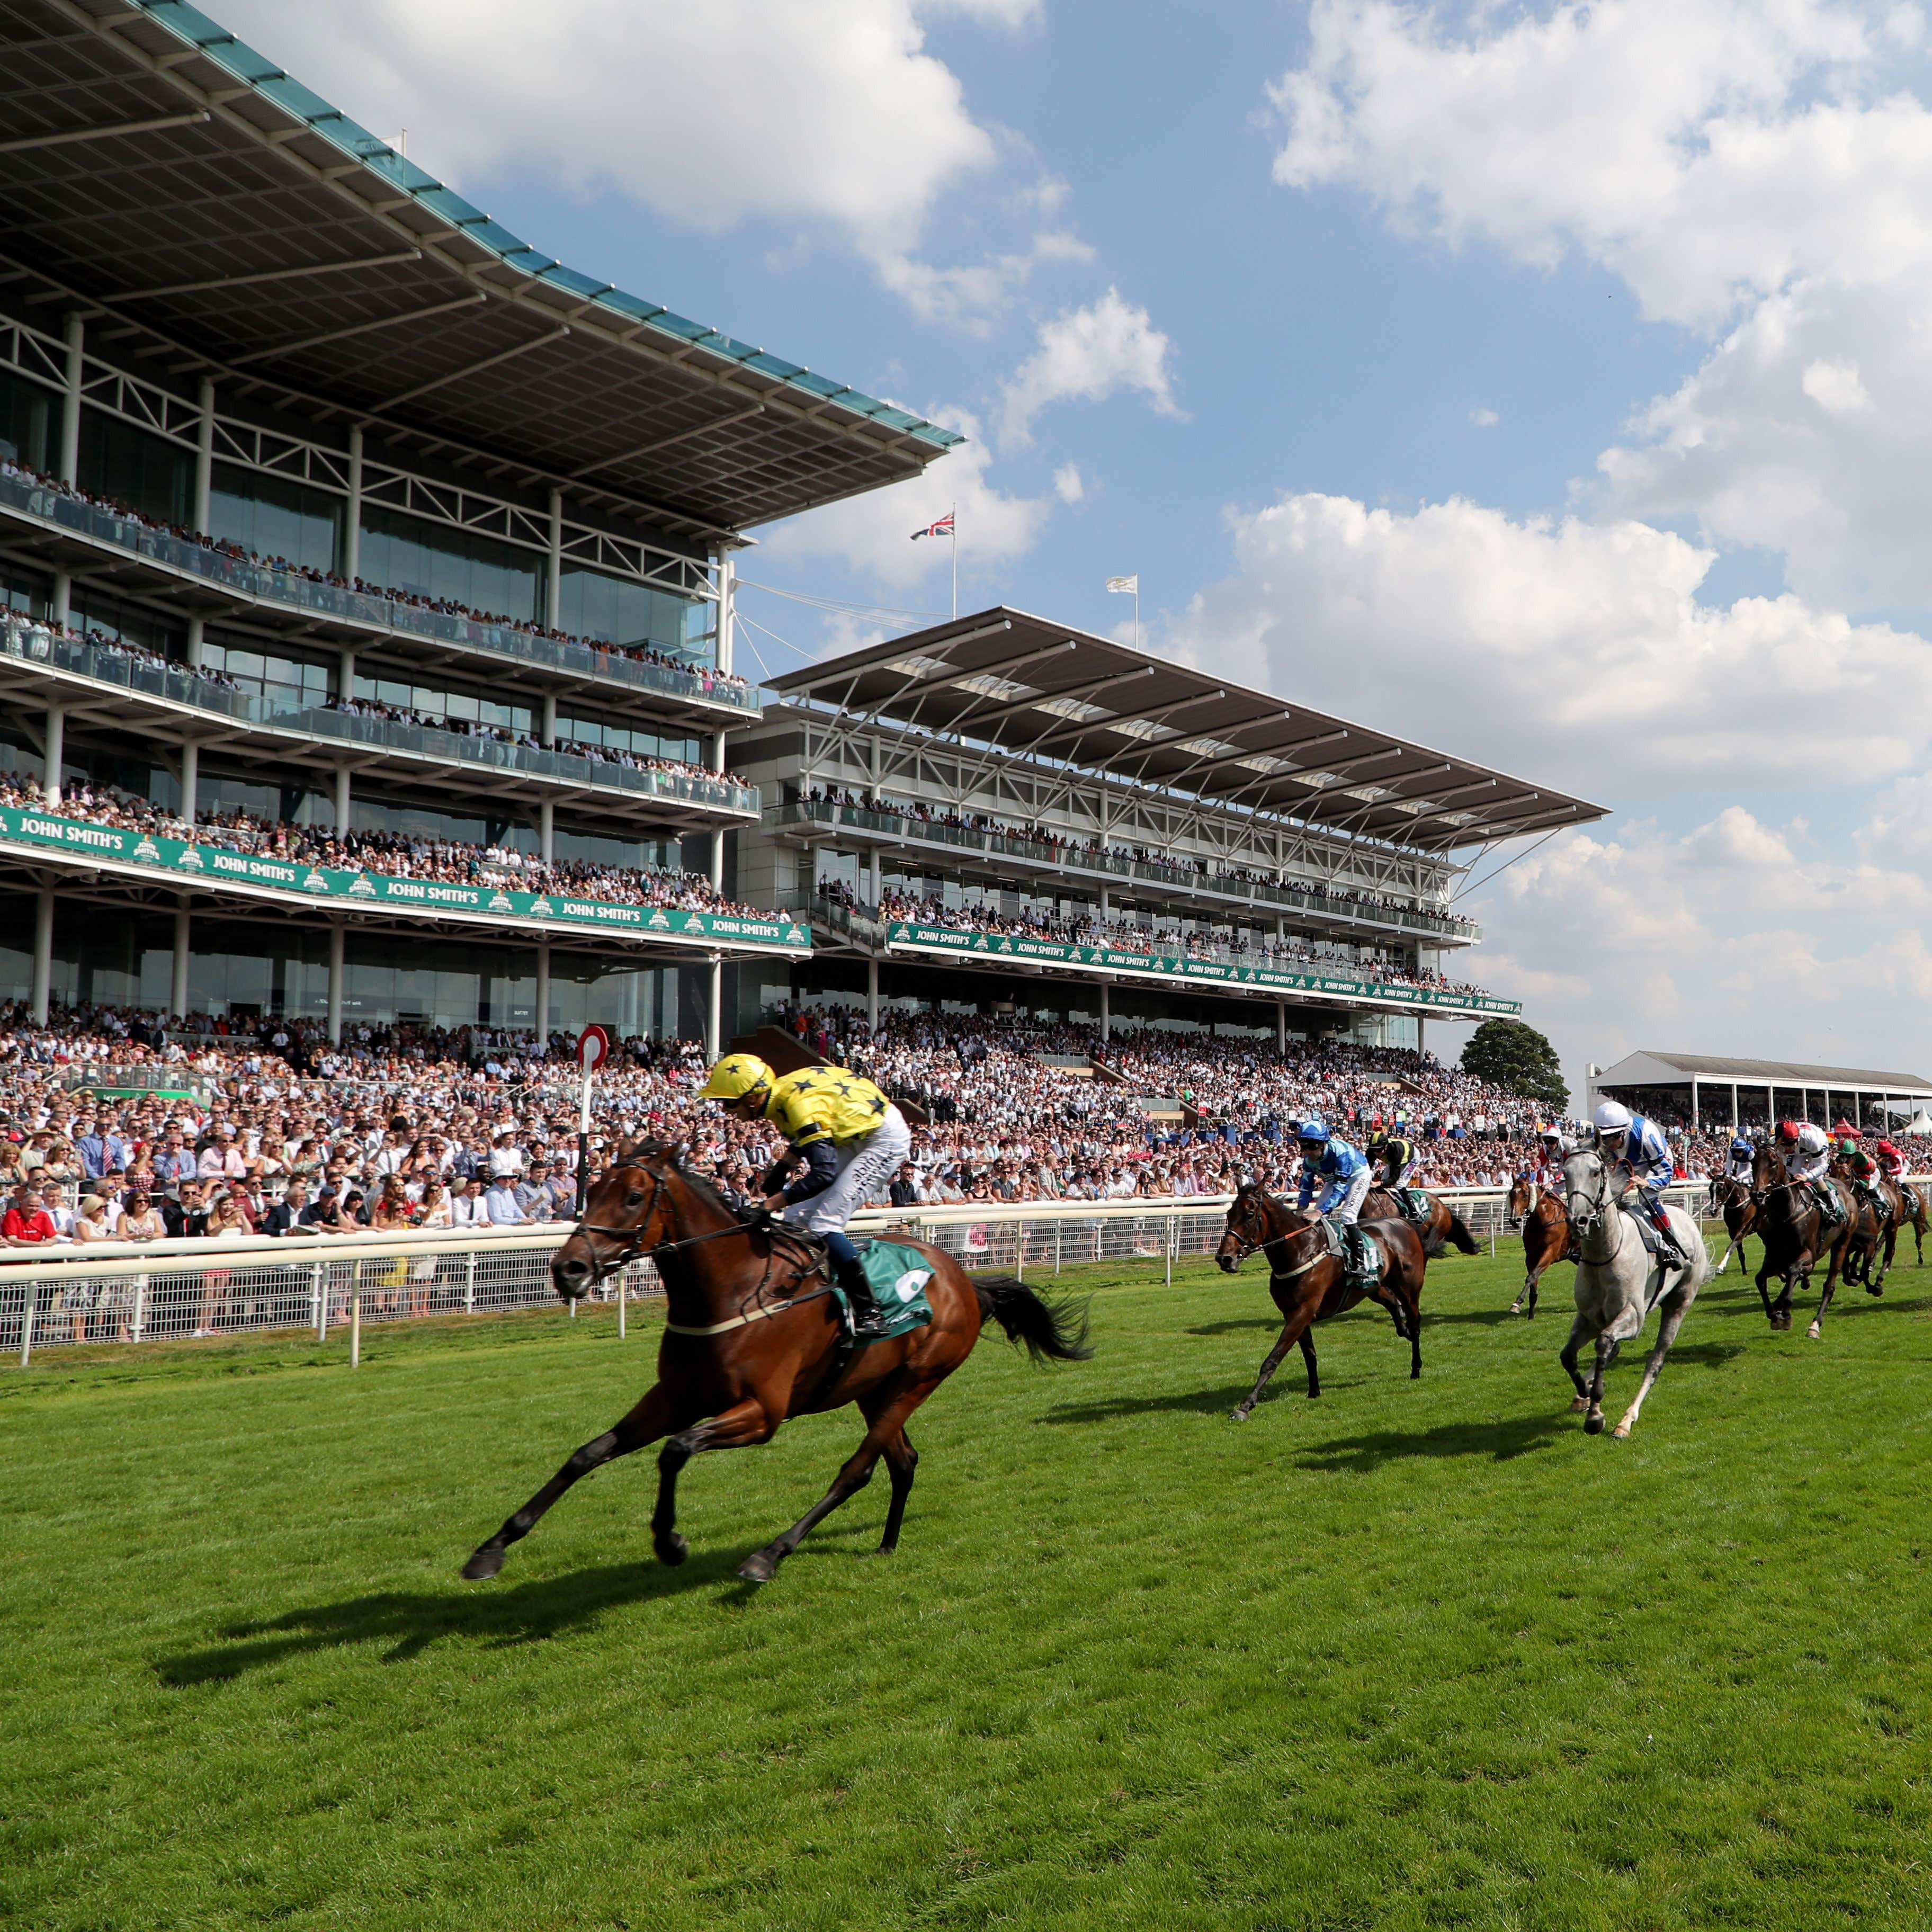 Euchen Glen and Alistair Rawlinson win the 59th John Smith's Cup at York